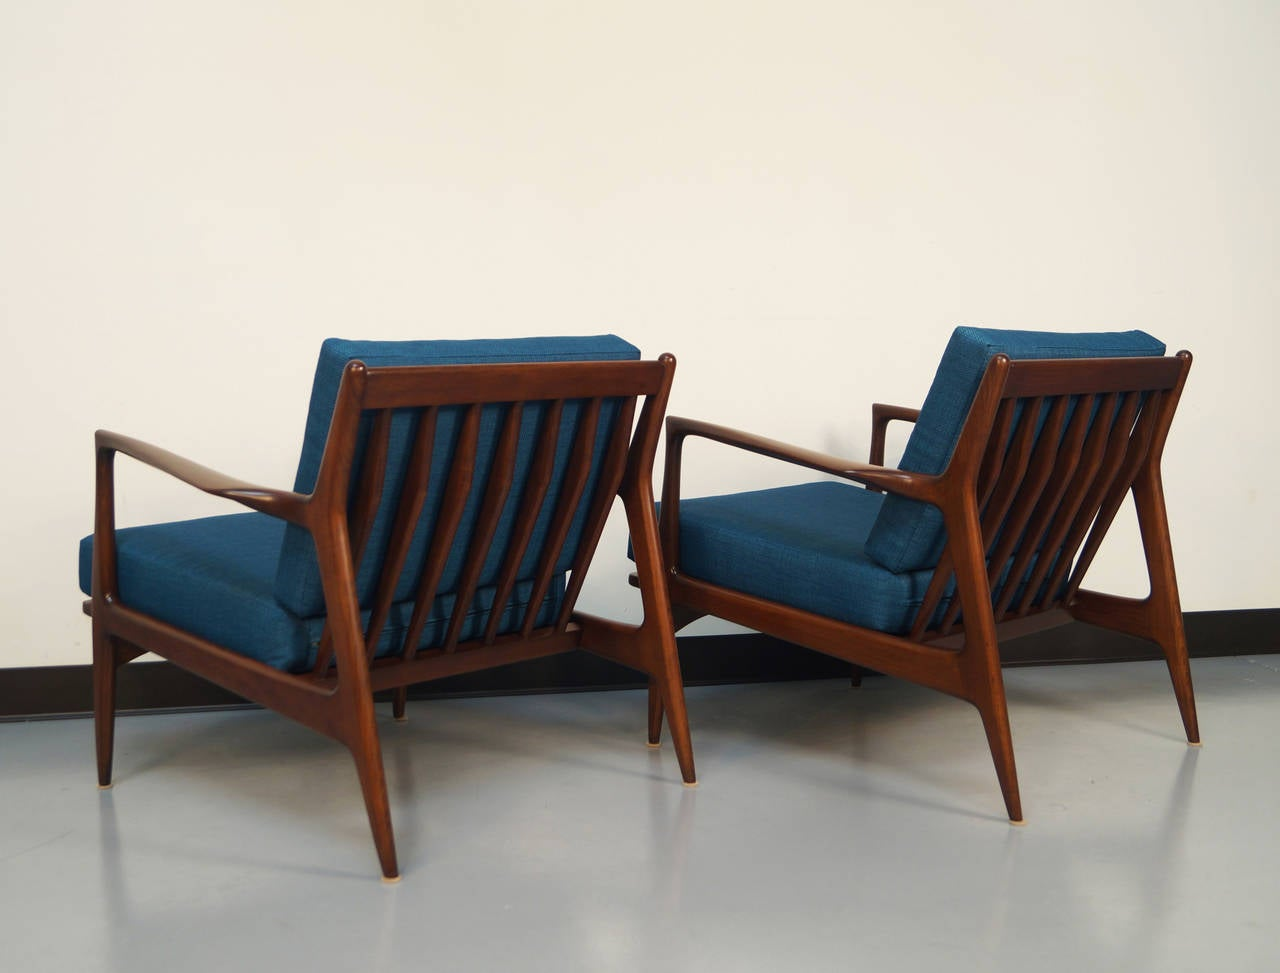 this danish modern lounge chairs by ib kofod larsen is no longer